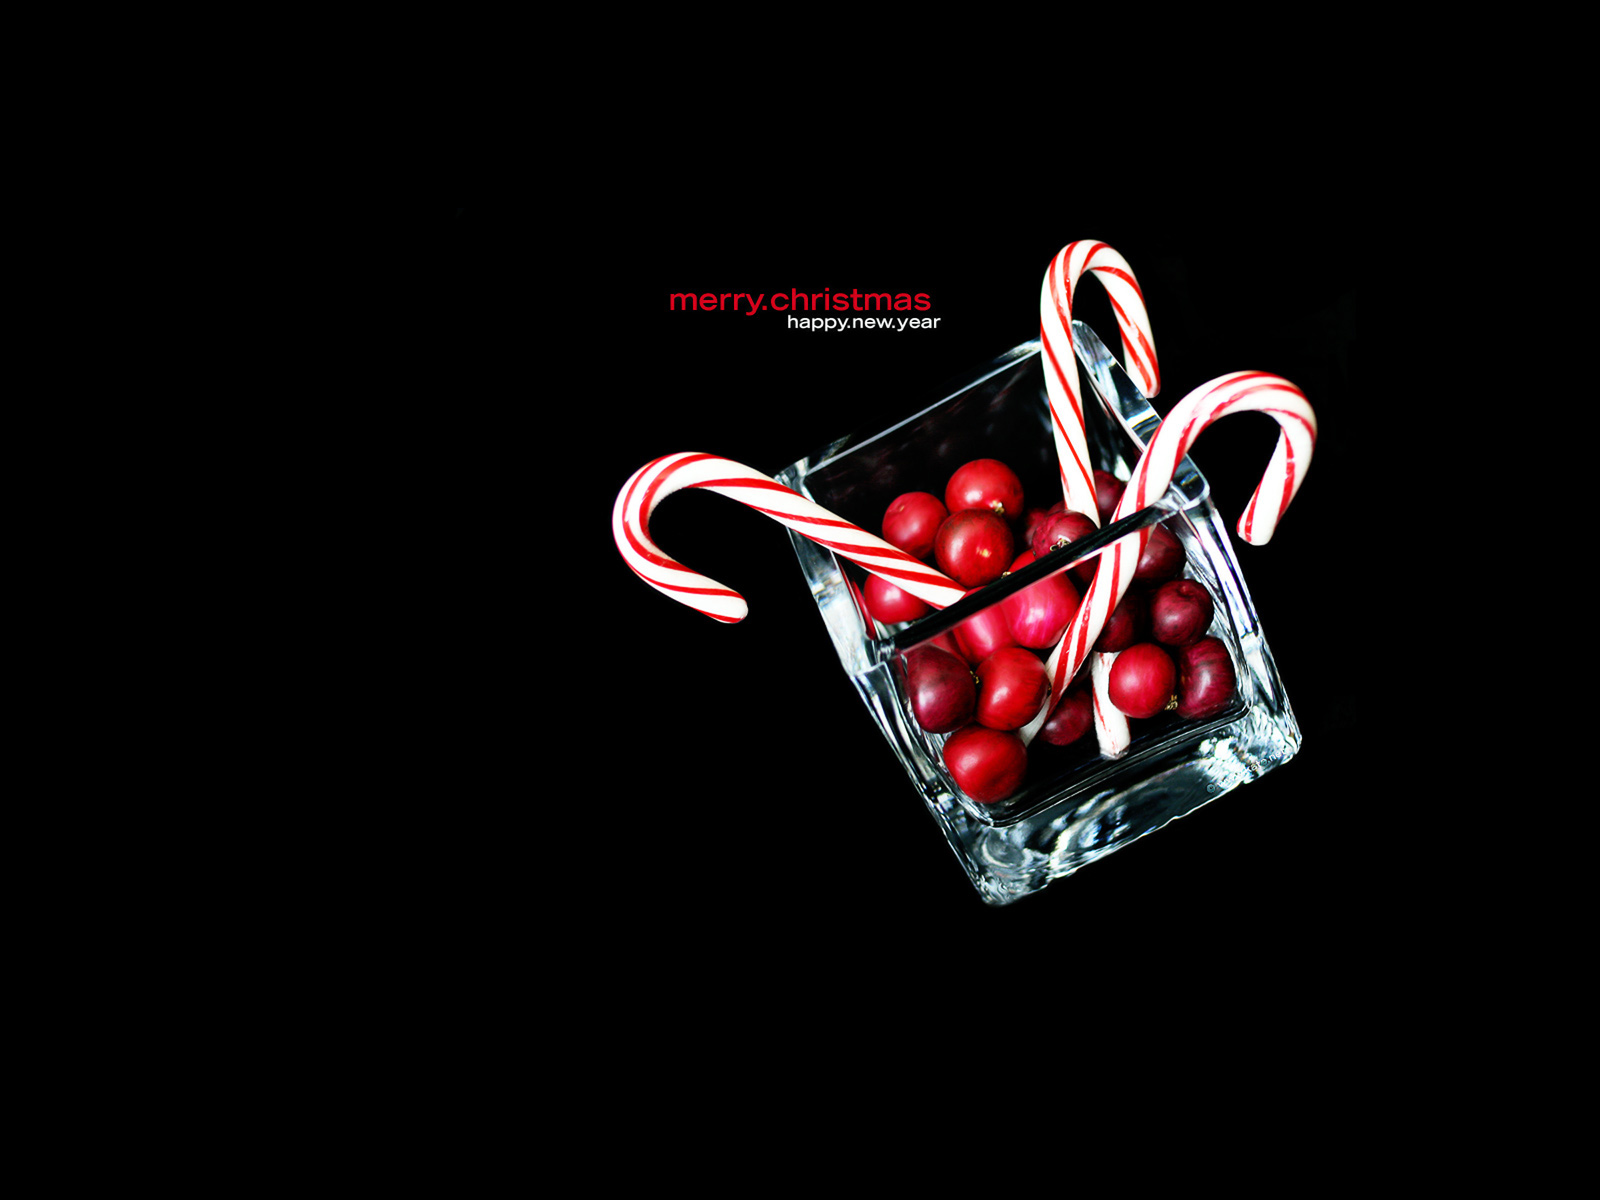 Candy Cane Wallpapers [HD] Wallpapers High Definition Wallpapers 1600x1200